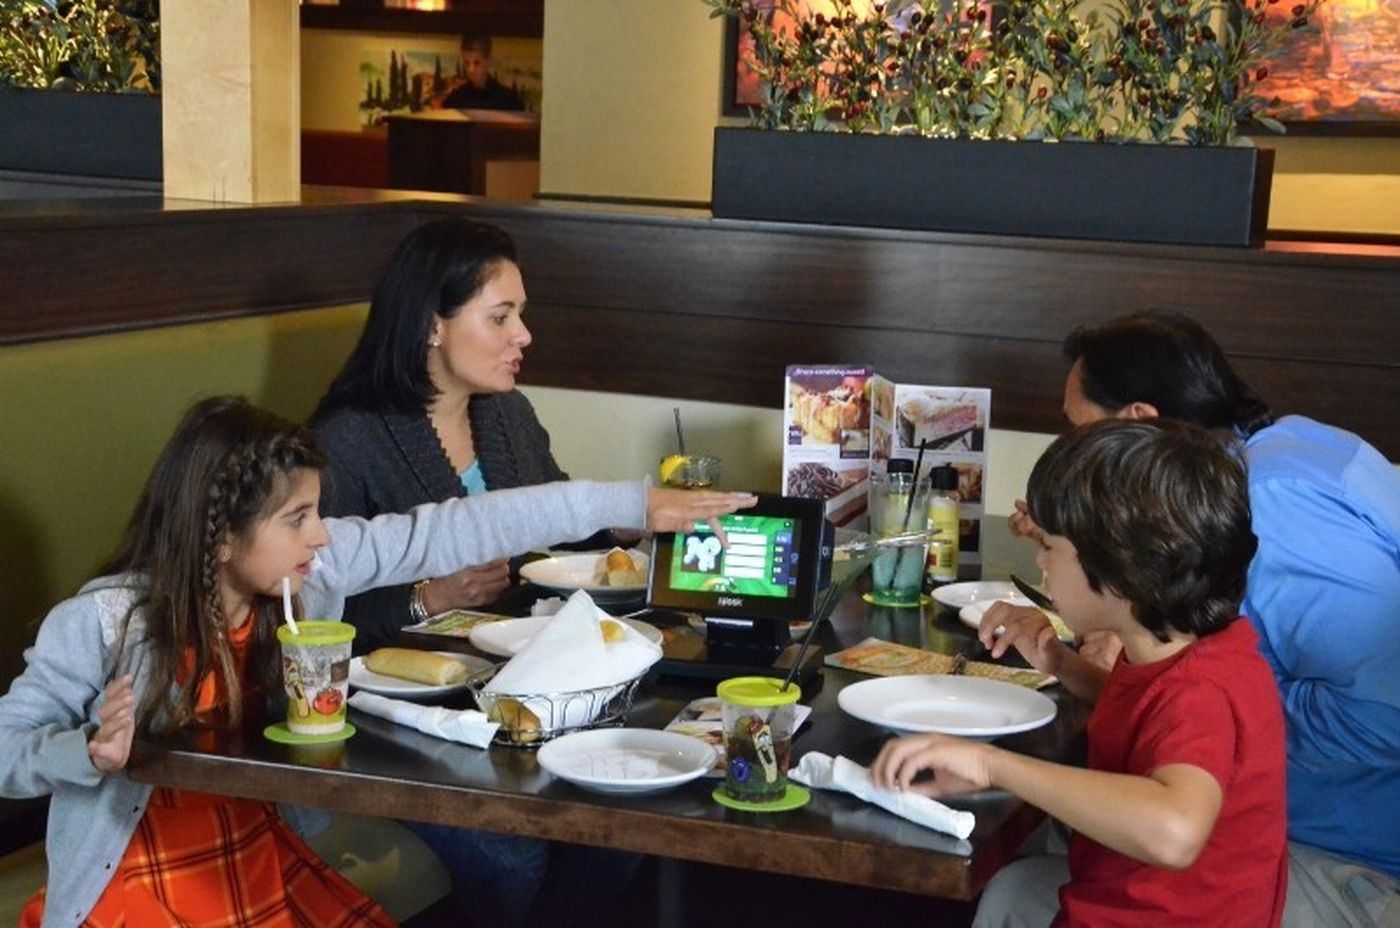 Restaurant tabletop tablet games are a great way for family guests to pass the time while waiting for dinner to arrive.